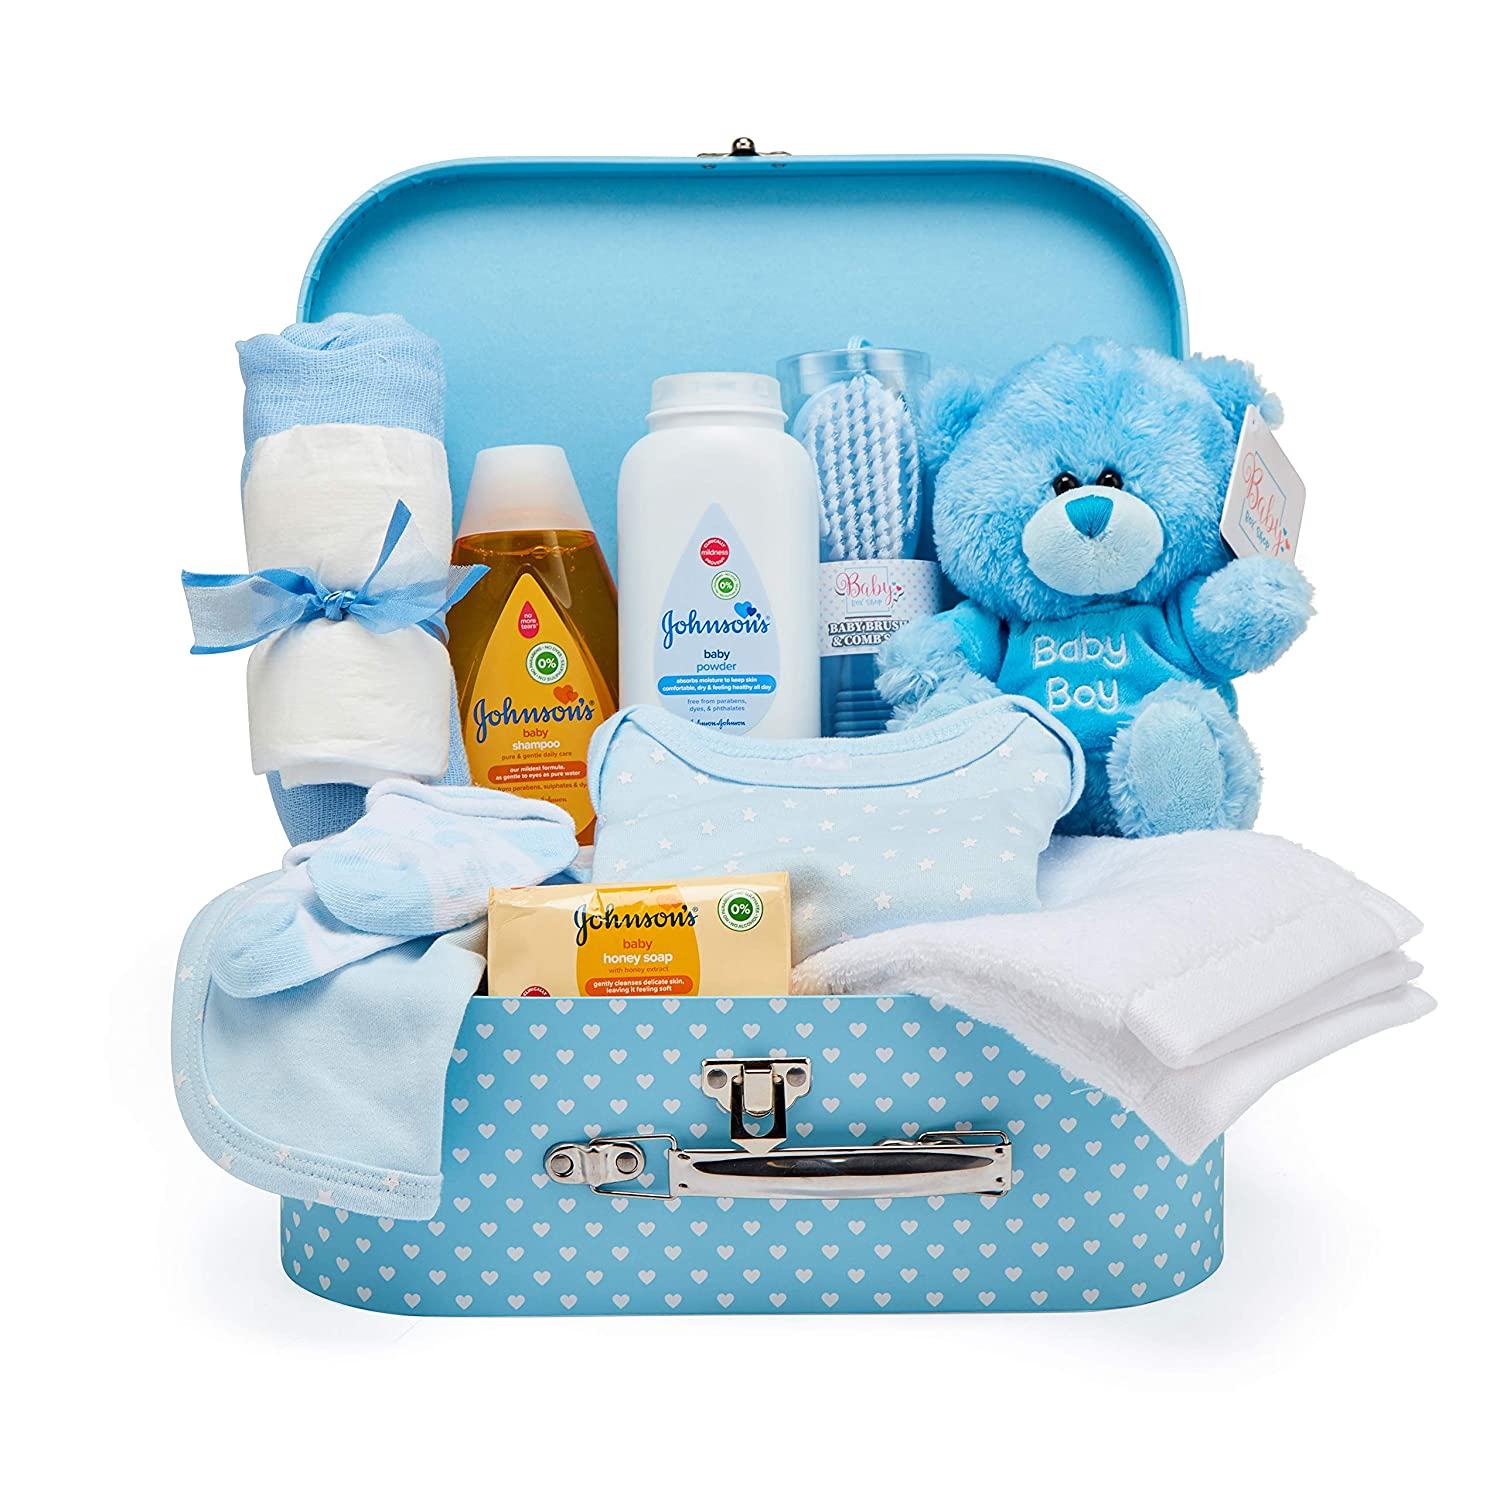 Newborn Baby Gift Set – Keepsake Box in Blue with Baby Clothes, Teddy Bear and Gifts for a New Baby Boy